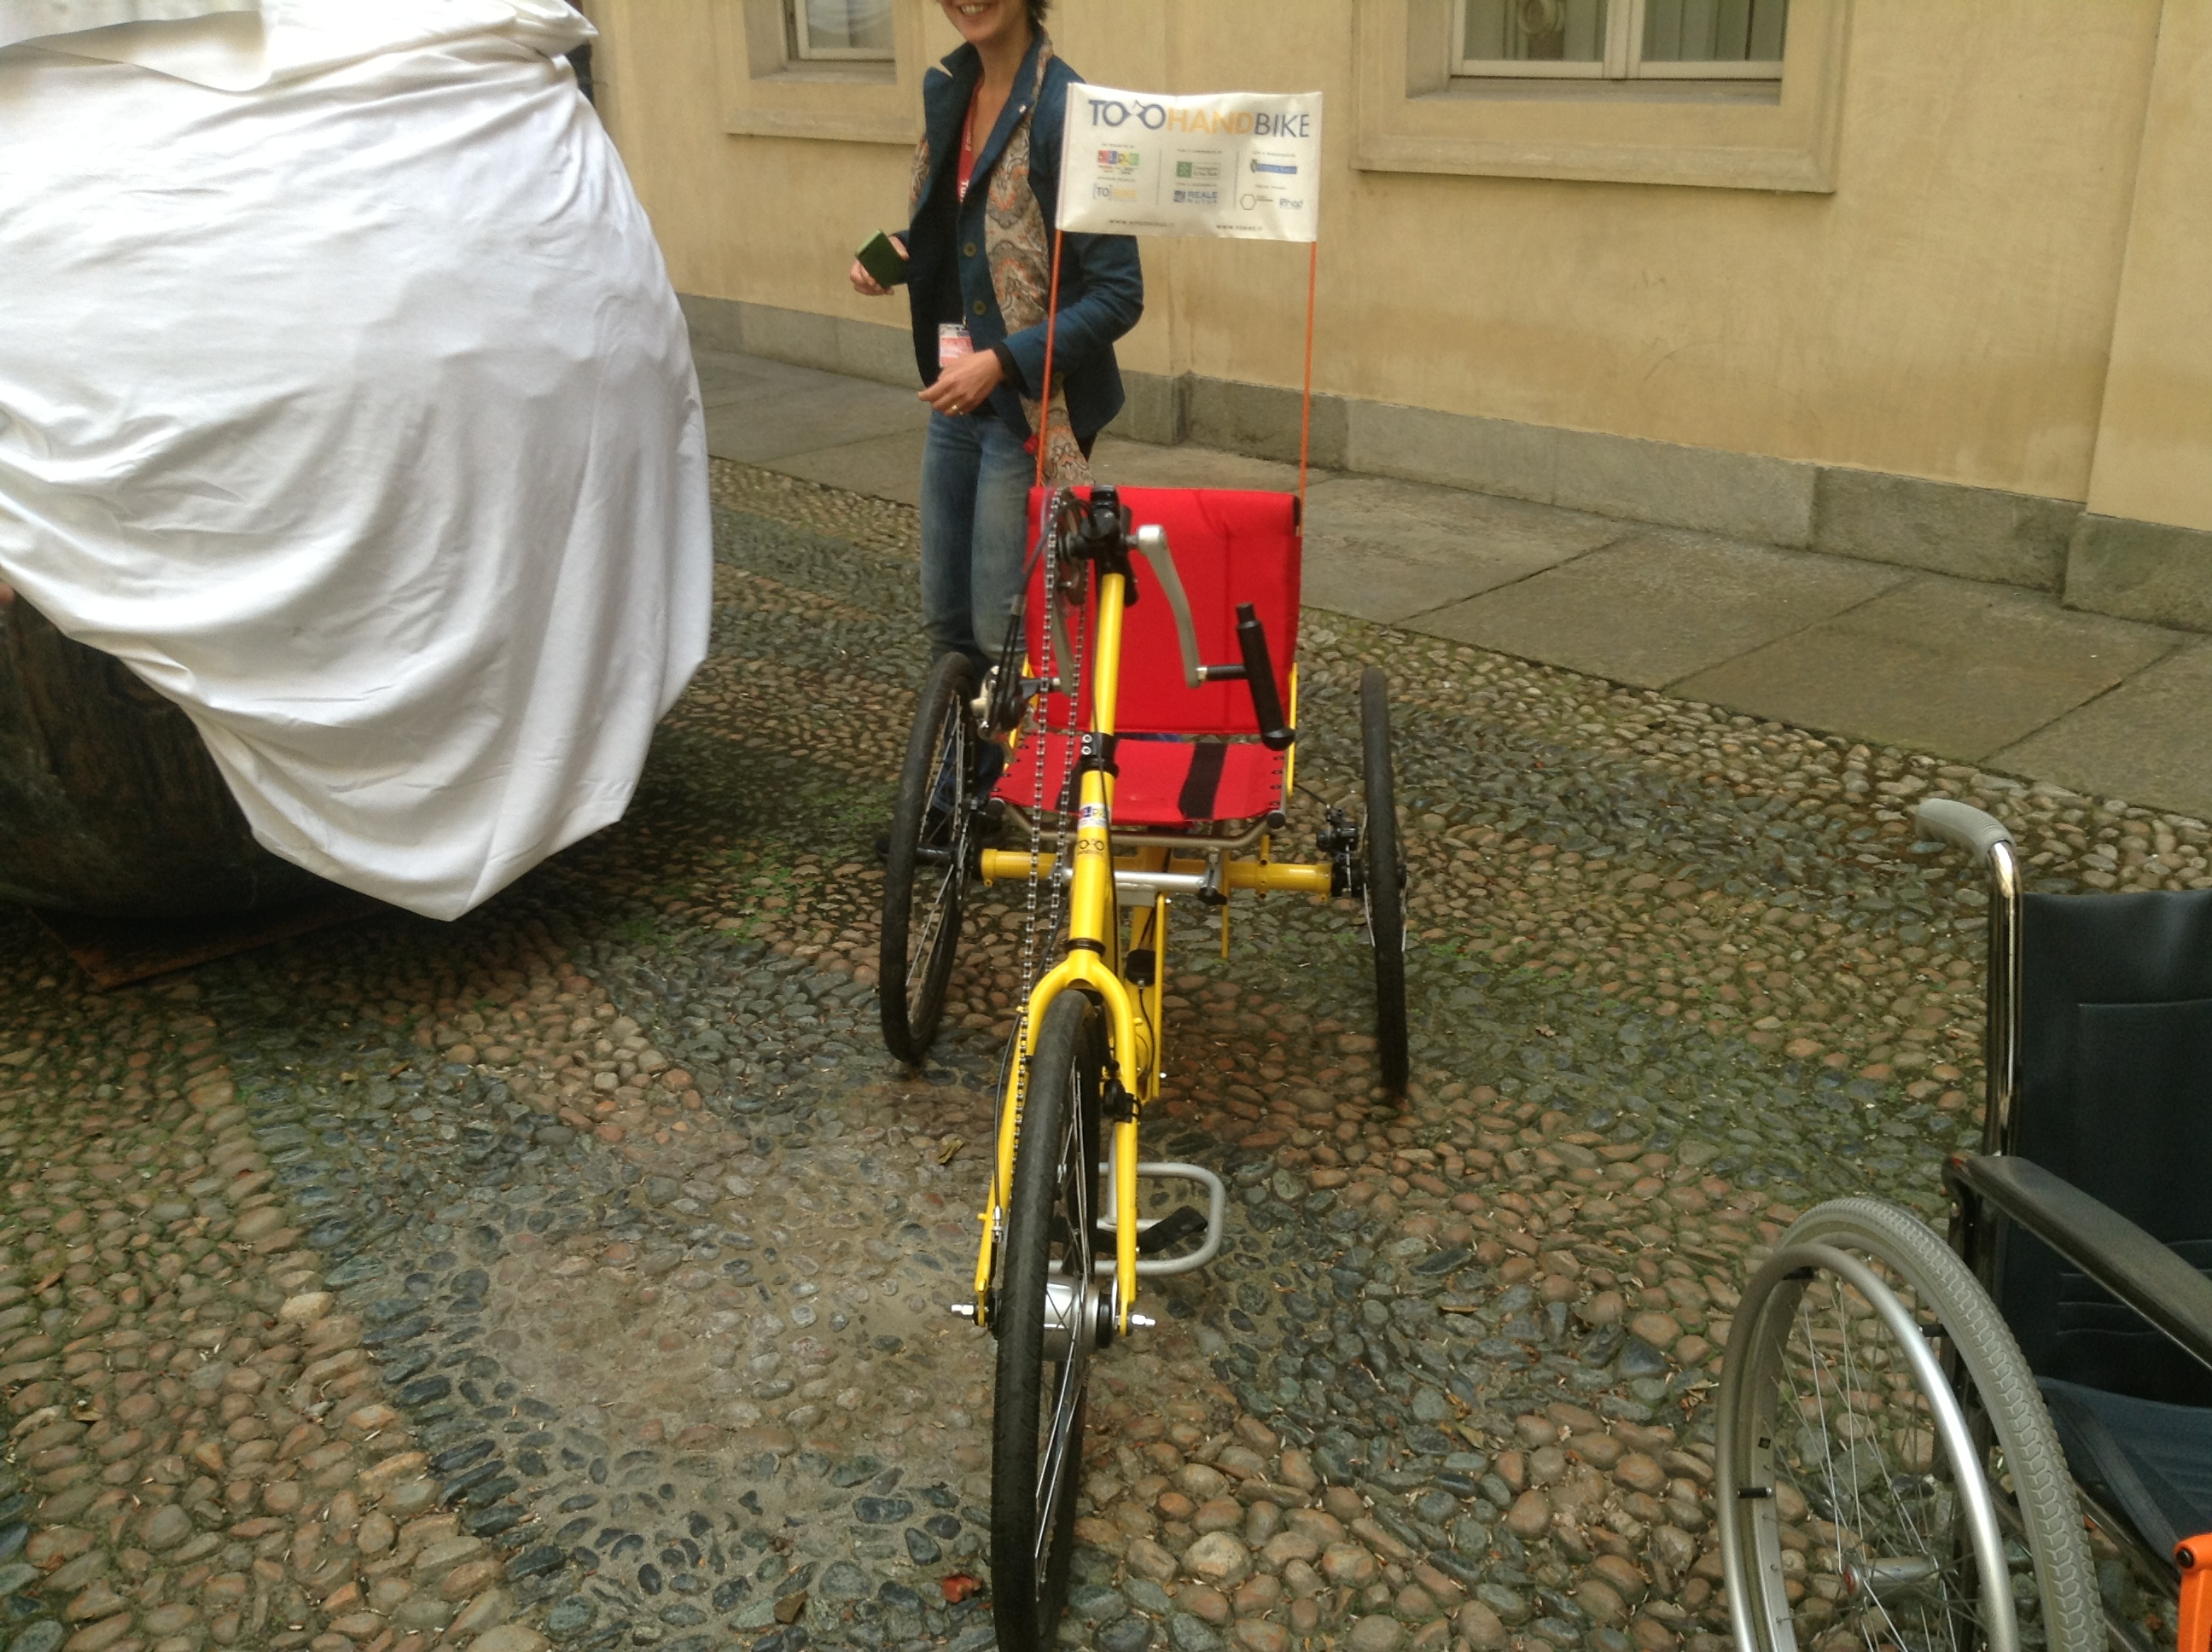 Bike sharing per disabili